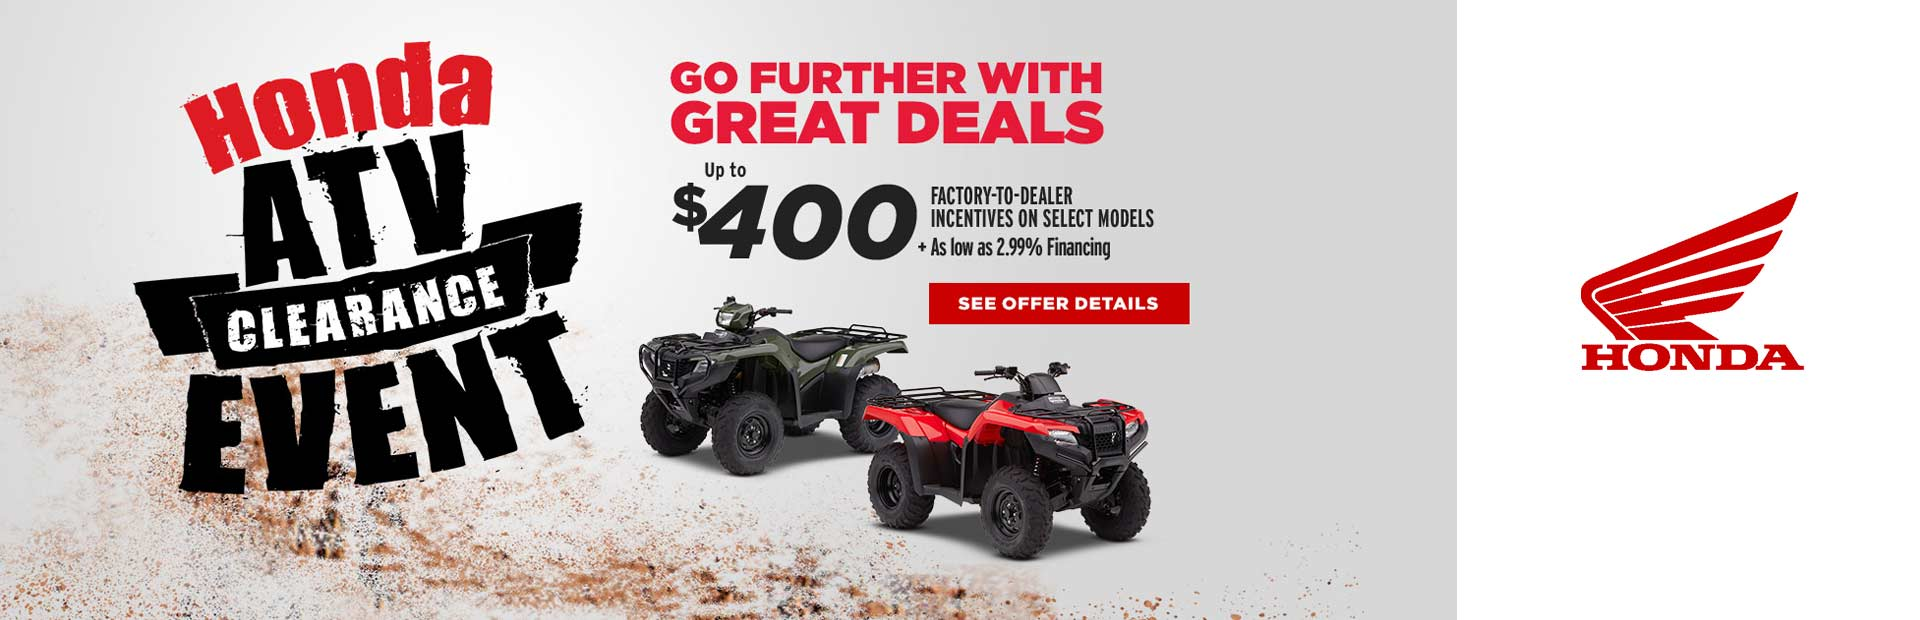 Honda: Honda ATV Clearance Event - Up to $400 Incentives